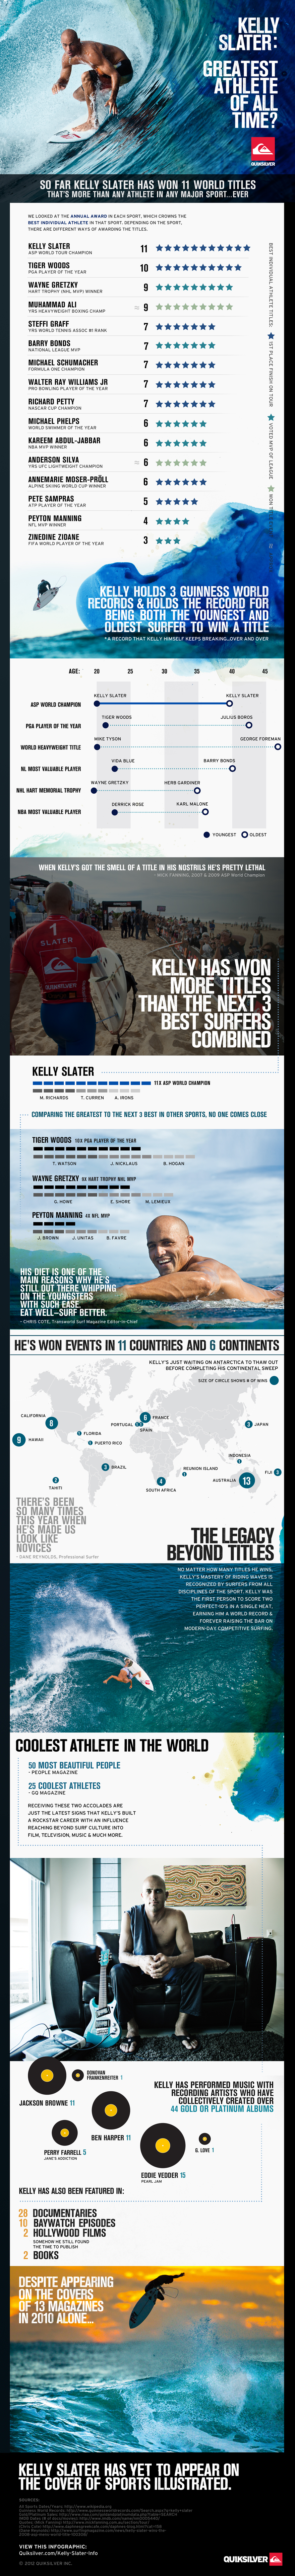 Is Kelly Slater the Greatest Athlete of all time? Infographic